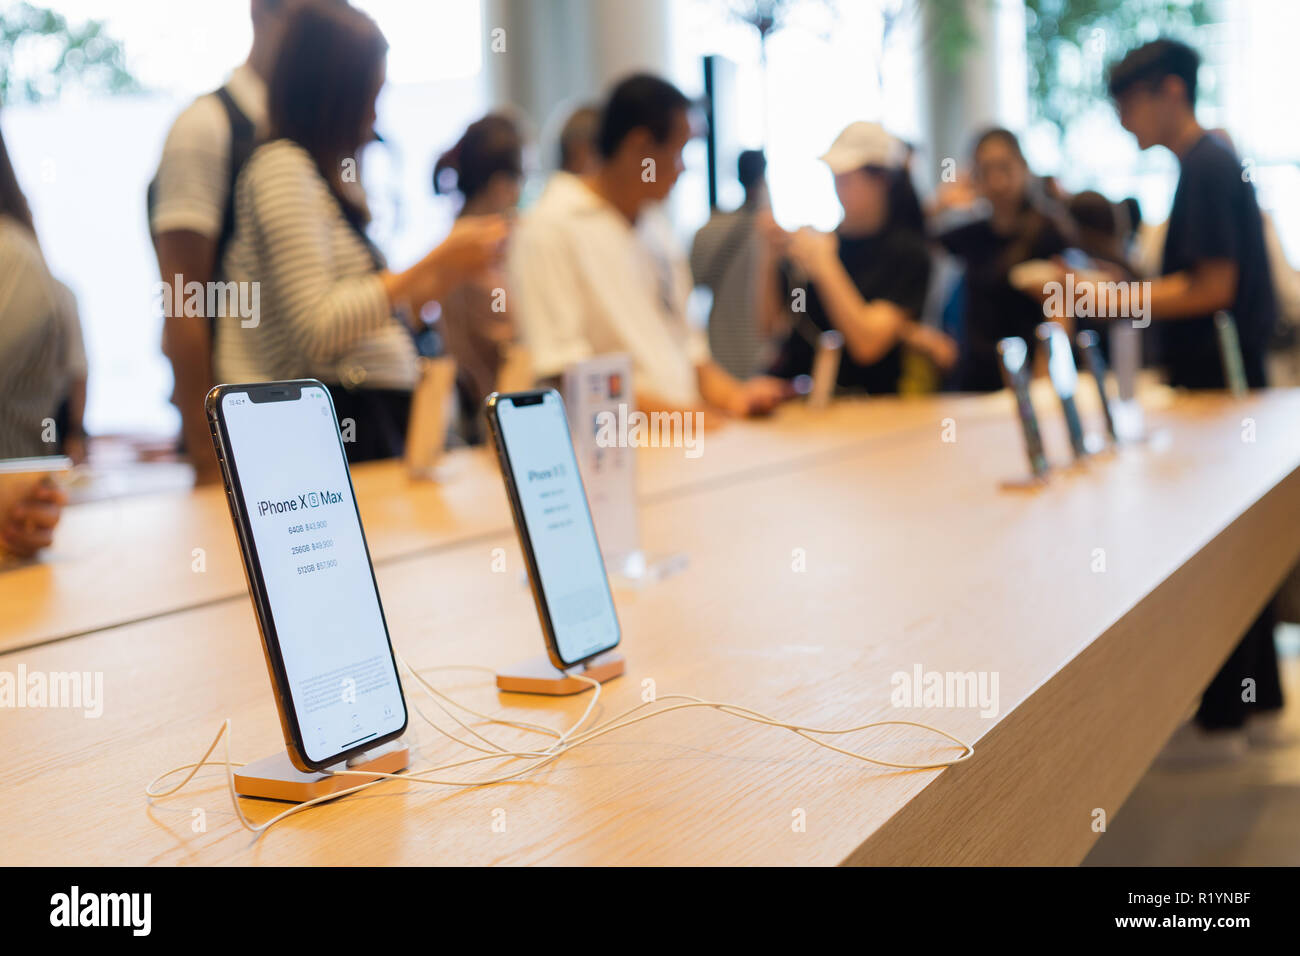 BANGKOK, THAILAND - November 11, 2018:   New iPhone XS Max charging in docking station goes on sale in Apple Store at Iconsiam Bangkok Thailand. - Stock Image